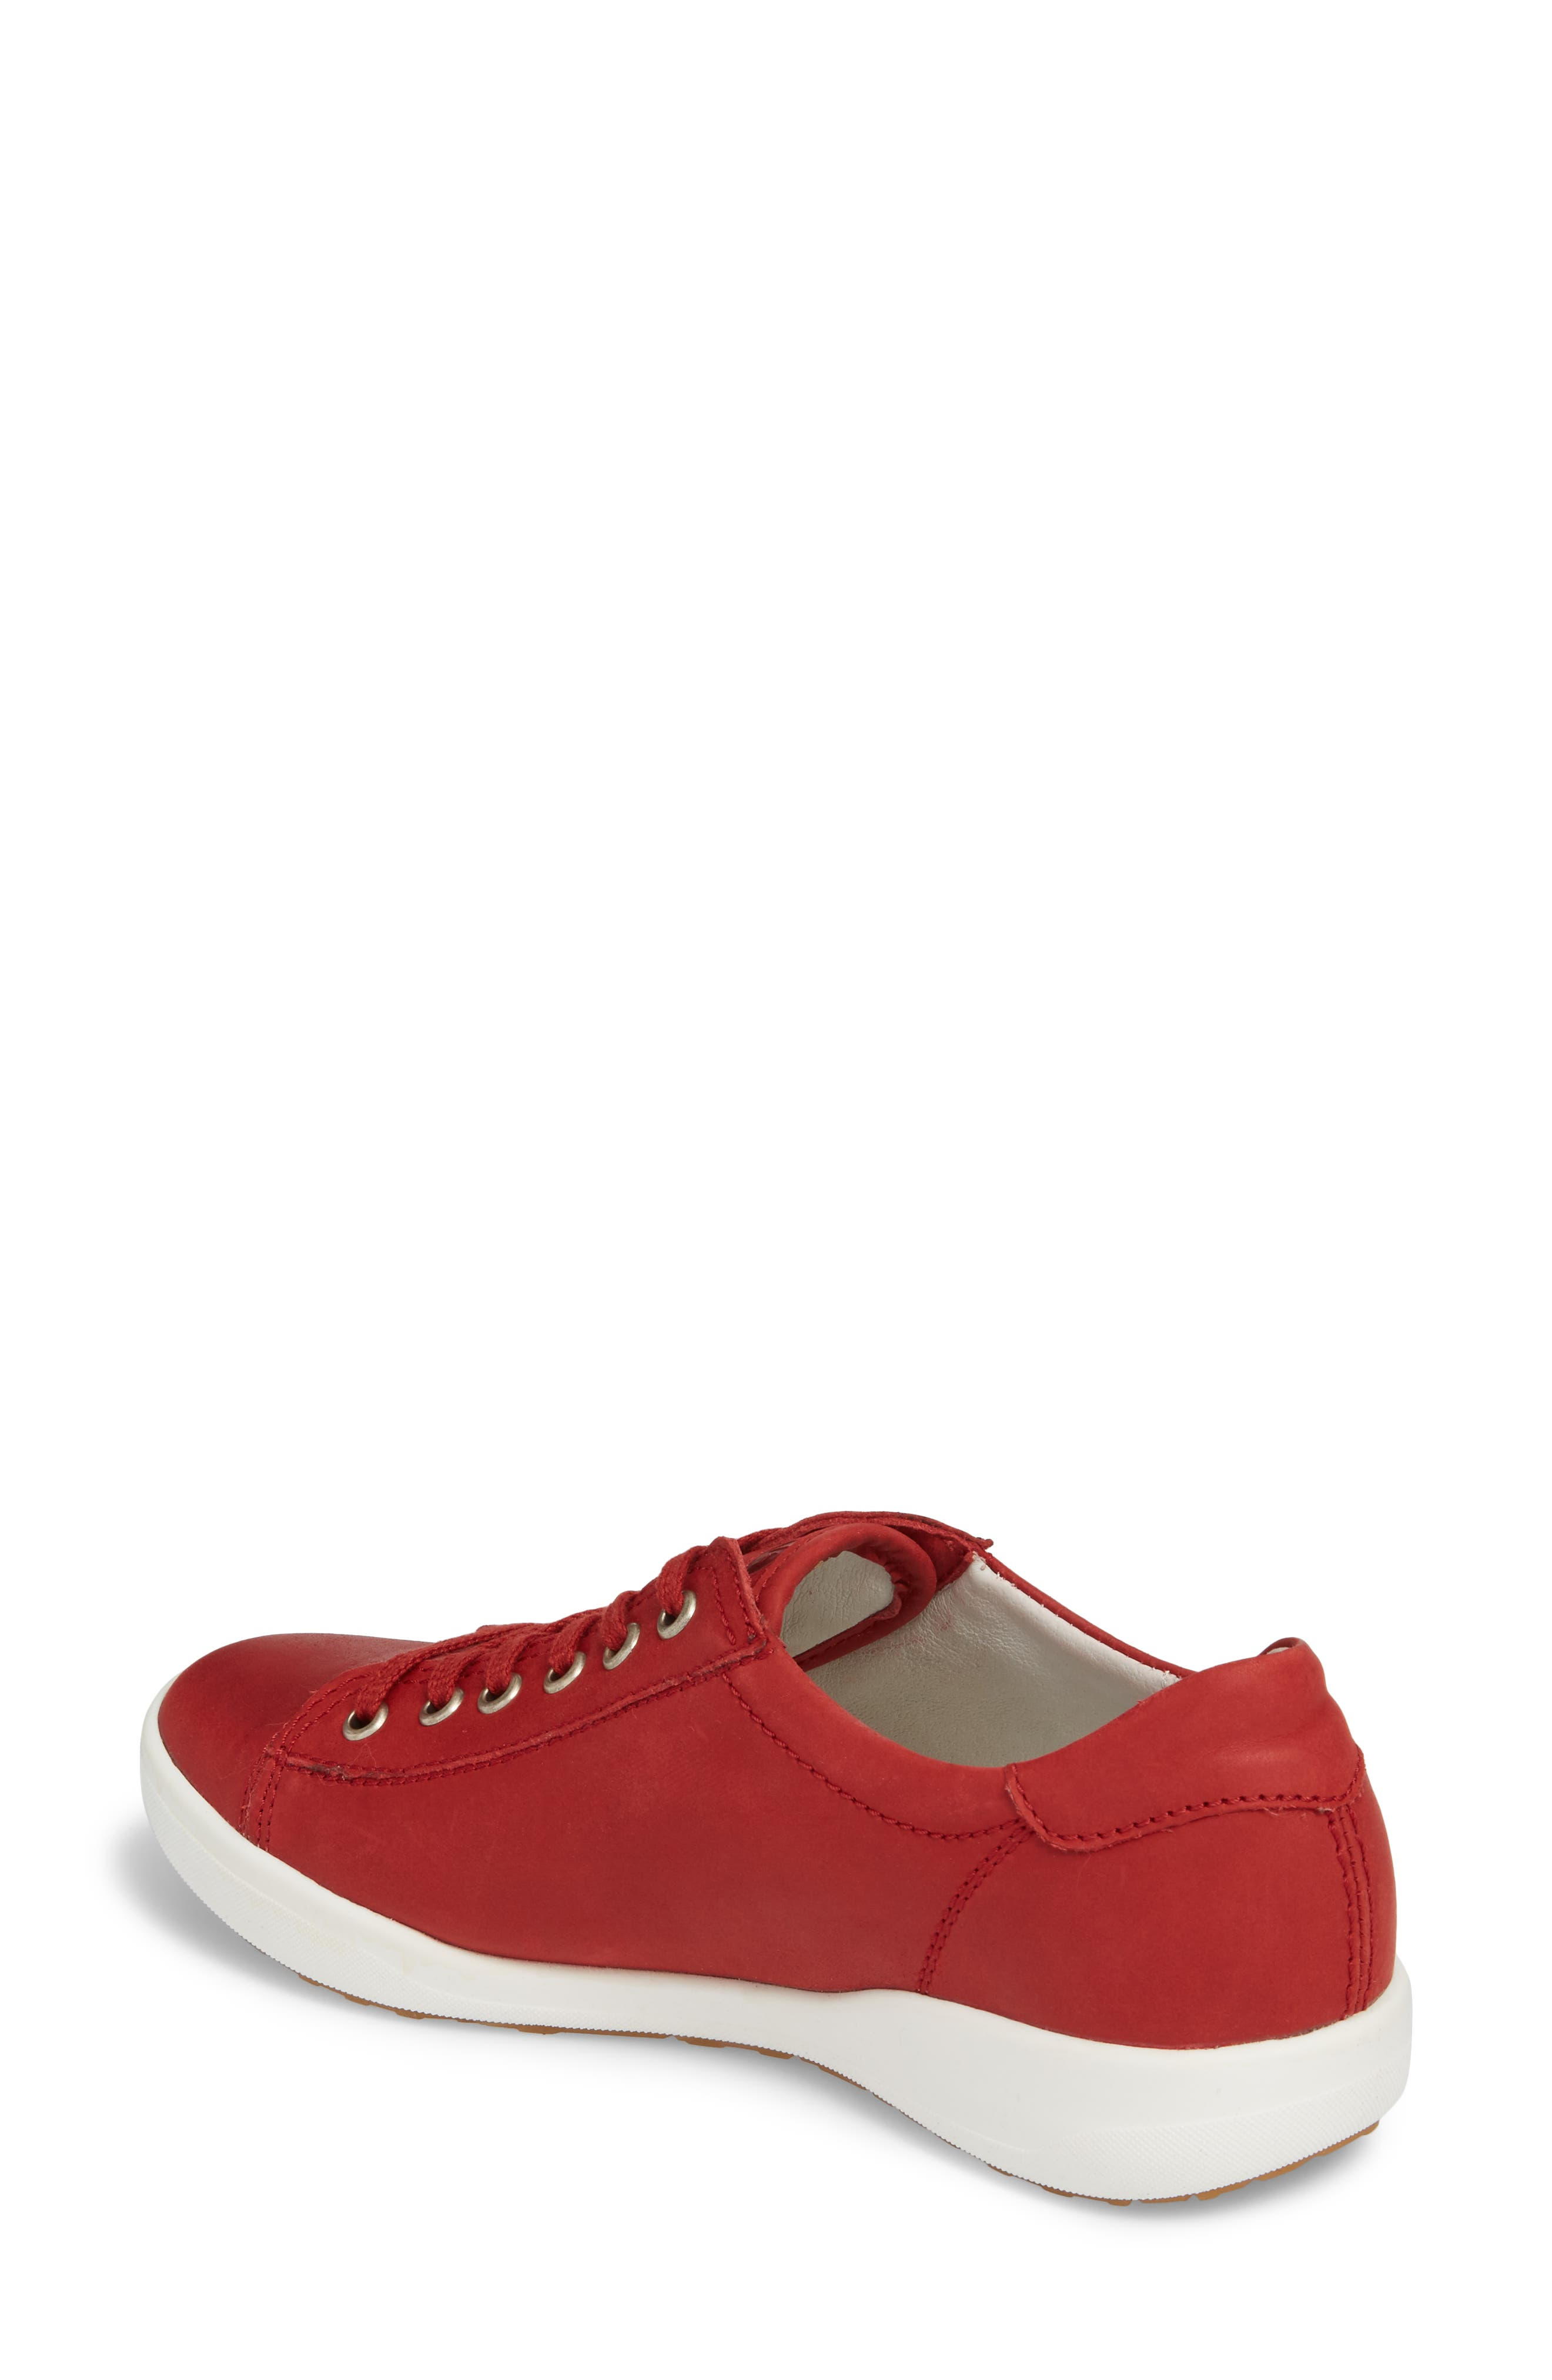 Sina 11 Sneaker,                             Alternate thumbnail 2, color,                             RED LEATHER 2